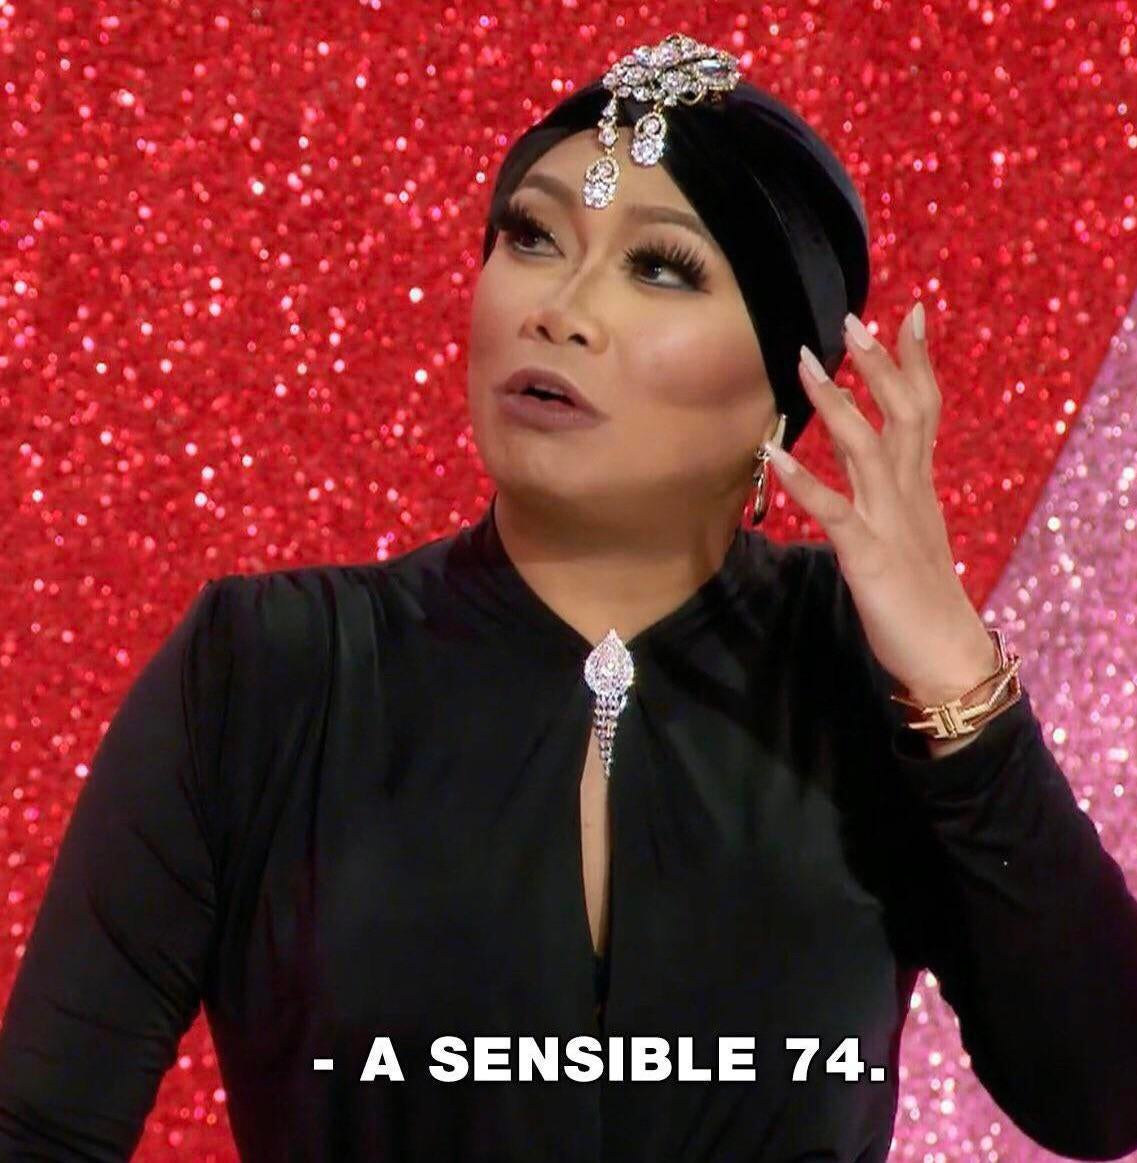 How many times have I re-watched the @denalifox vs @KahmoraHall lip sync? #DragRace